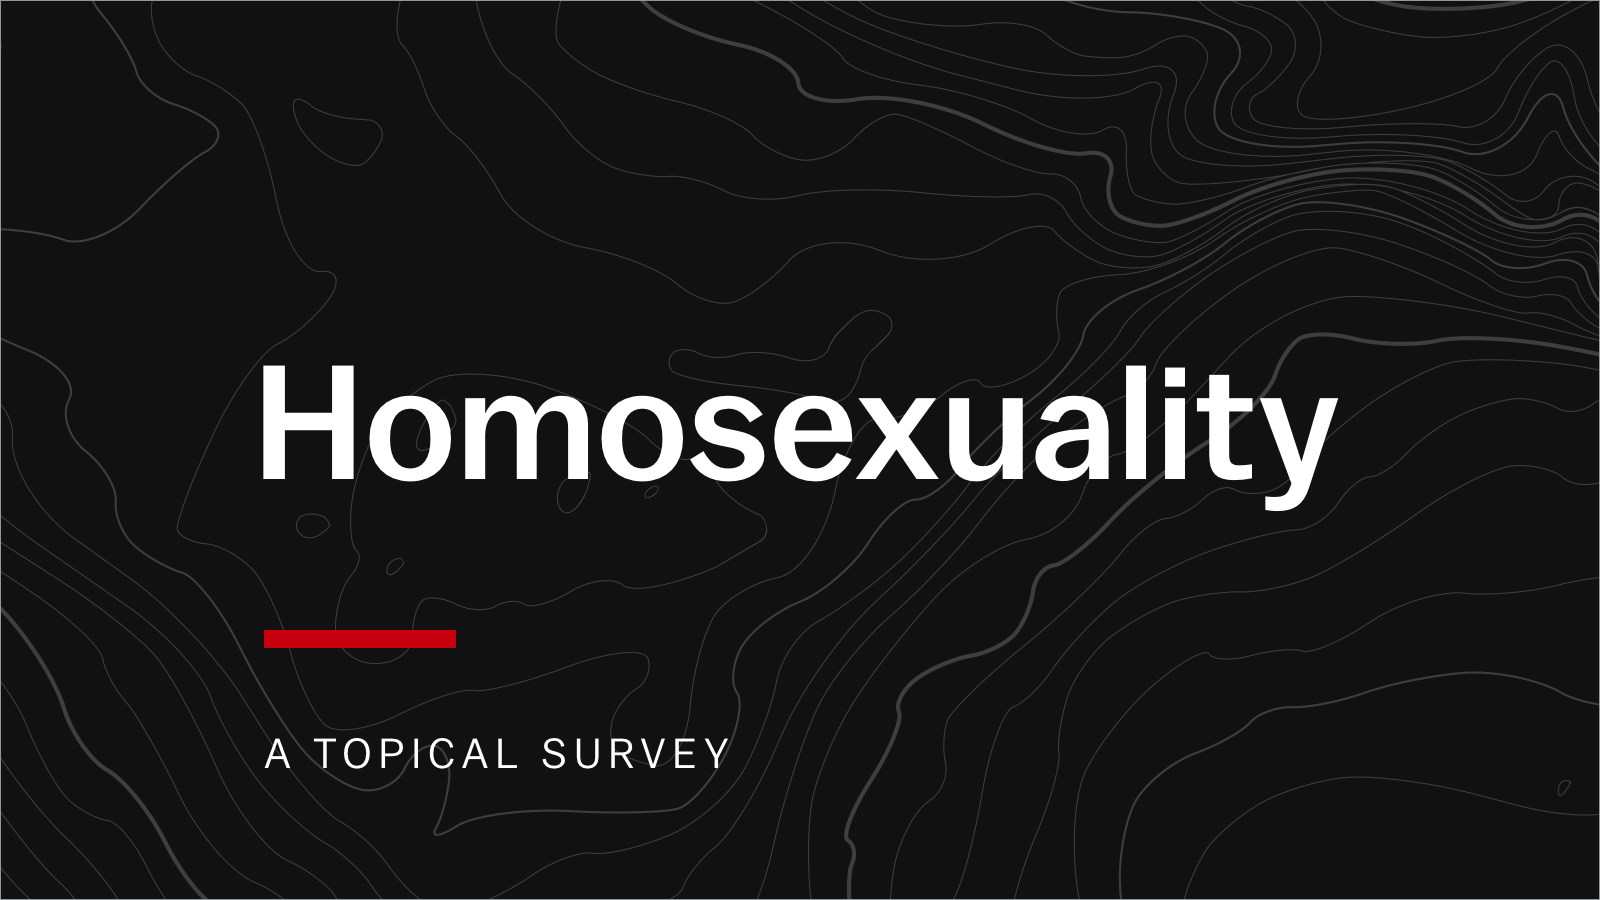 How to witness to homosexuals